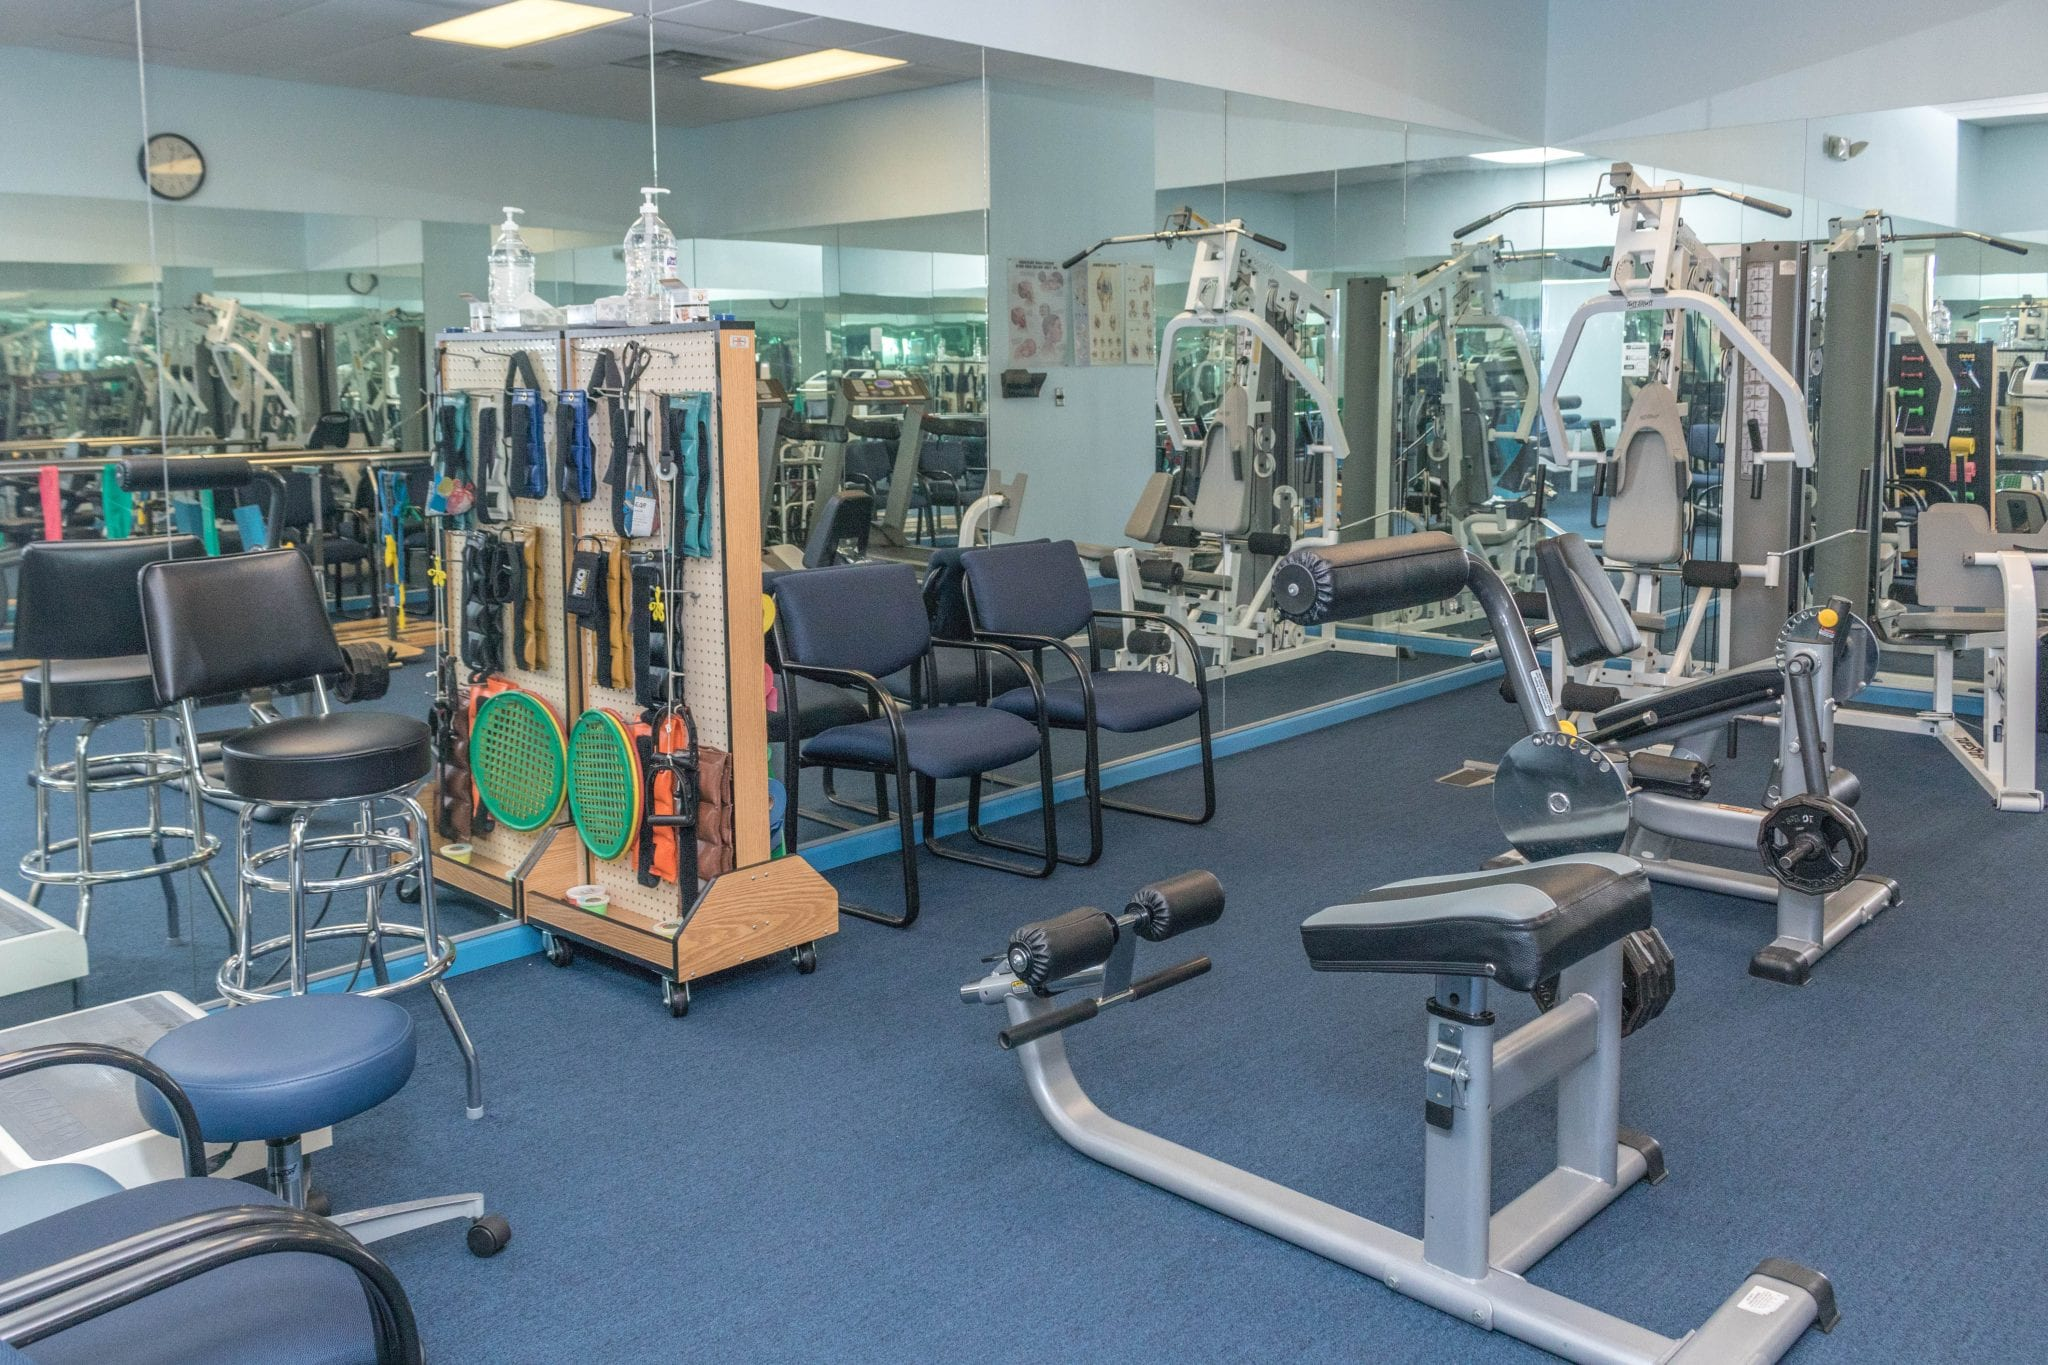 Modern Equipment and Technology for Physical Therapy Treatment